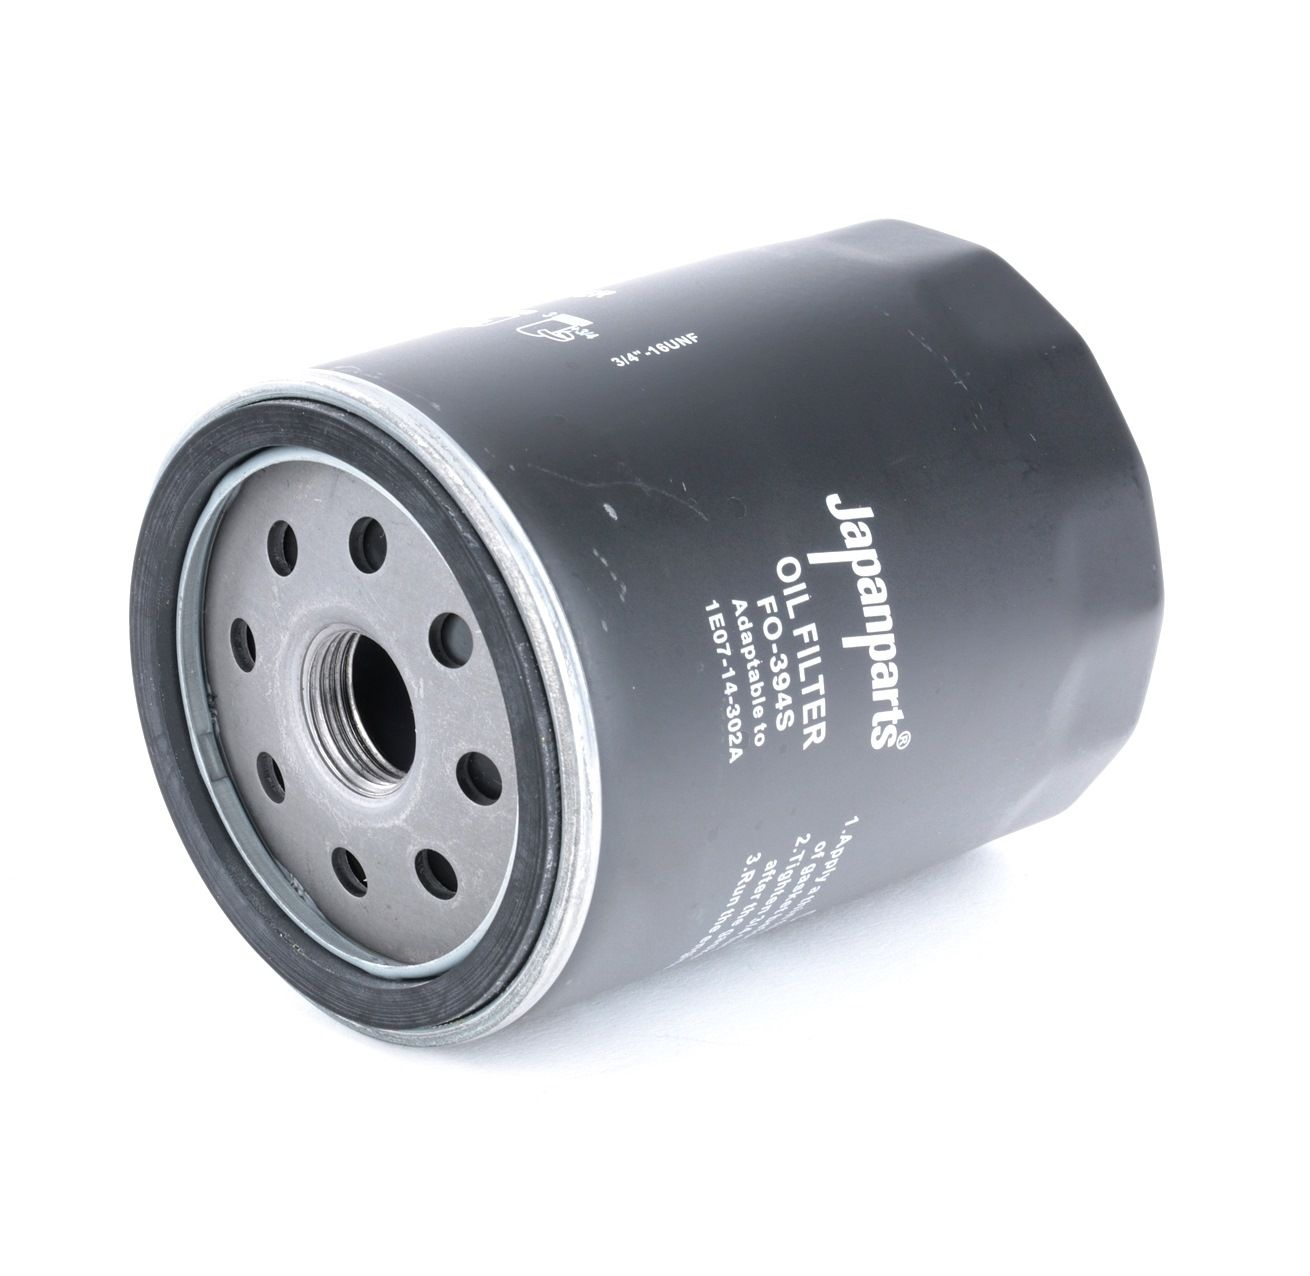 Filter JAPANPARTS FO-394S Bewertung